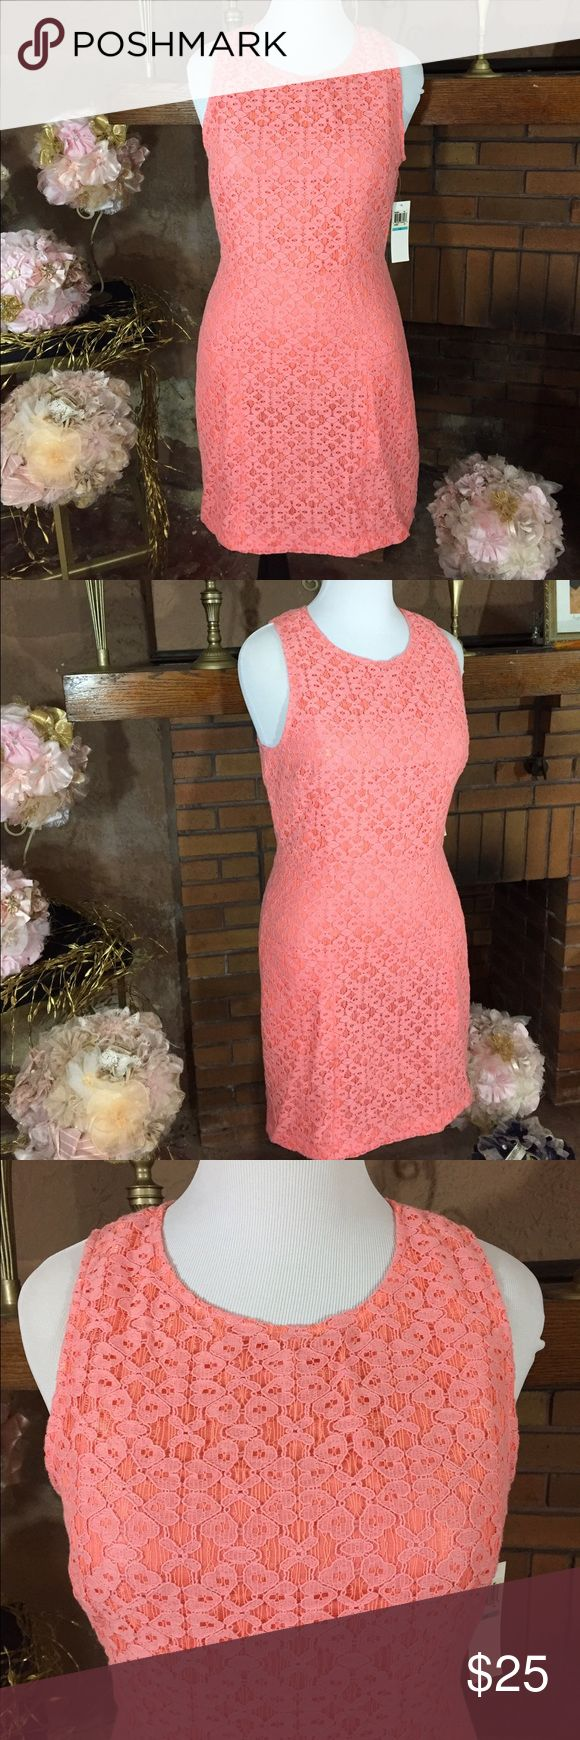 Blu-39 ciral lace dress size 16 Blu-39 coral lace dress size 16. No stretch. 40 in bust, 34in waist and 42 in hip. 27 in long from under the arm. New with tags. Please check out all pictures for best description of the items. Ask me any questions and happy shopping! Blu-39 Dresses Midi